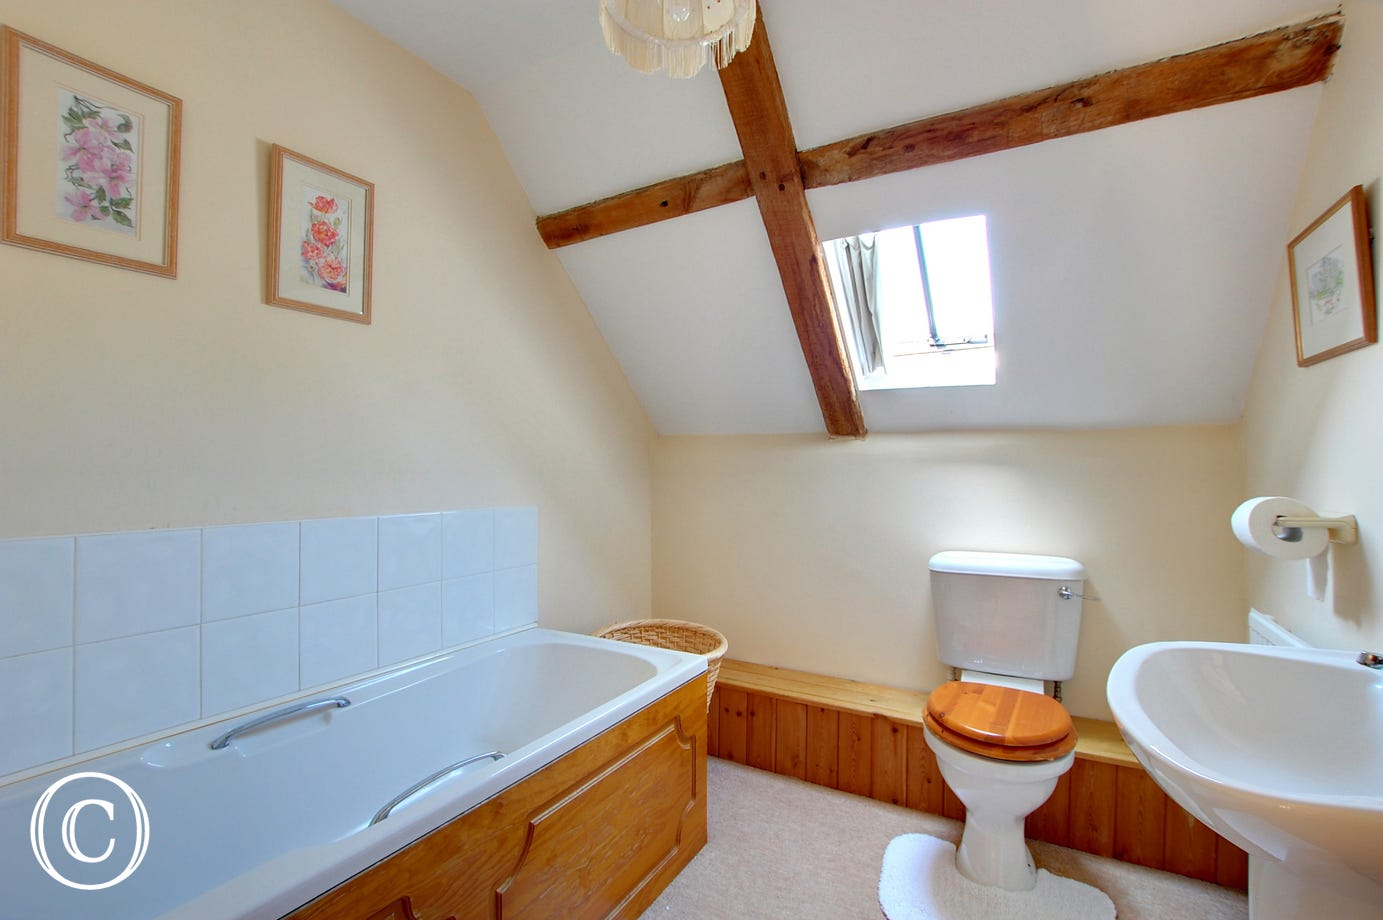 Bathroom with a bath and characterful beams